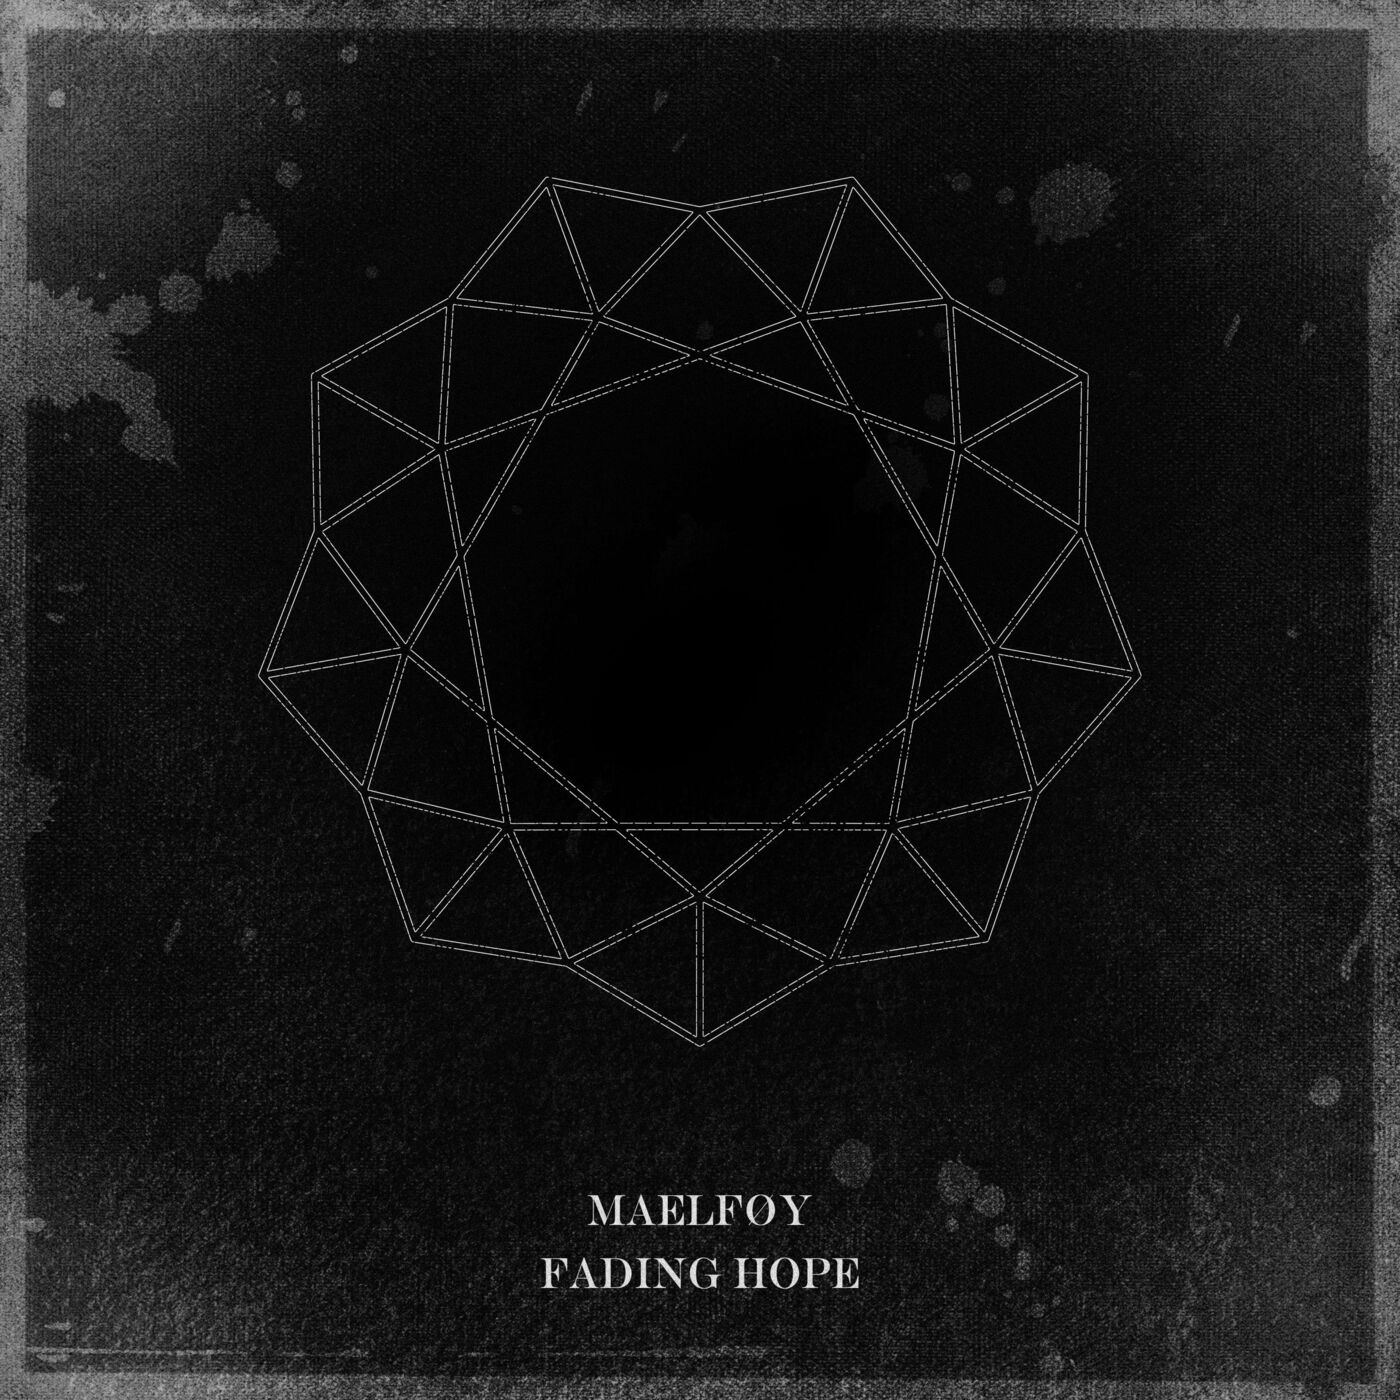 Maelføy - Fading Hope [single] (2020)